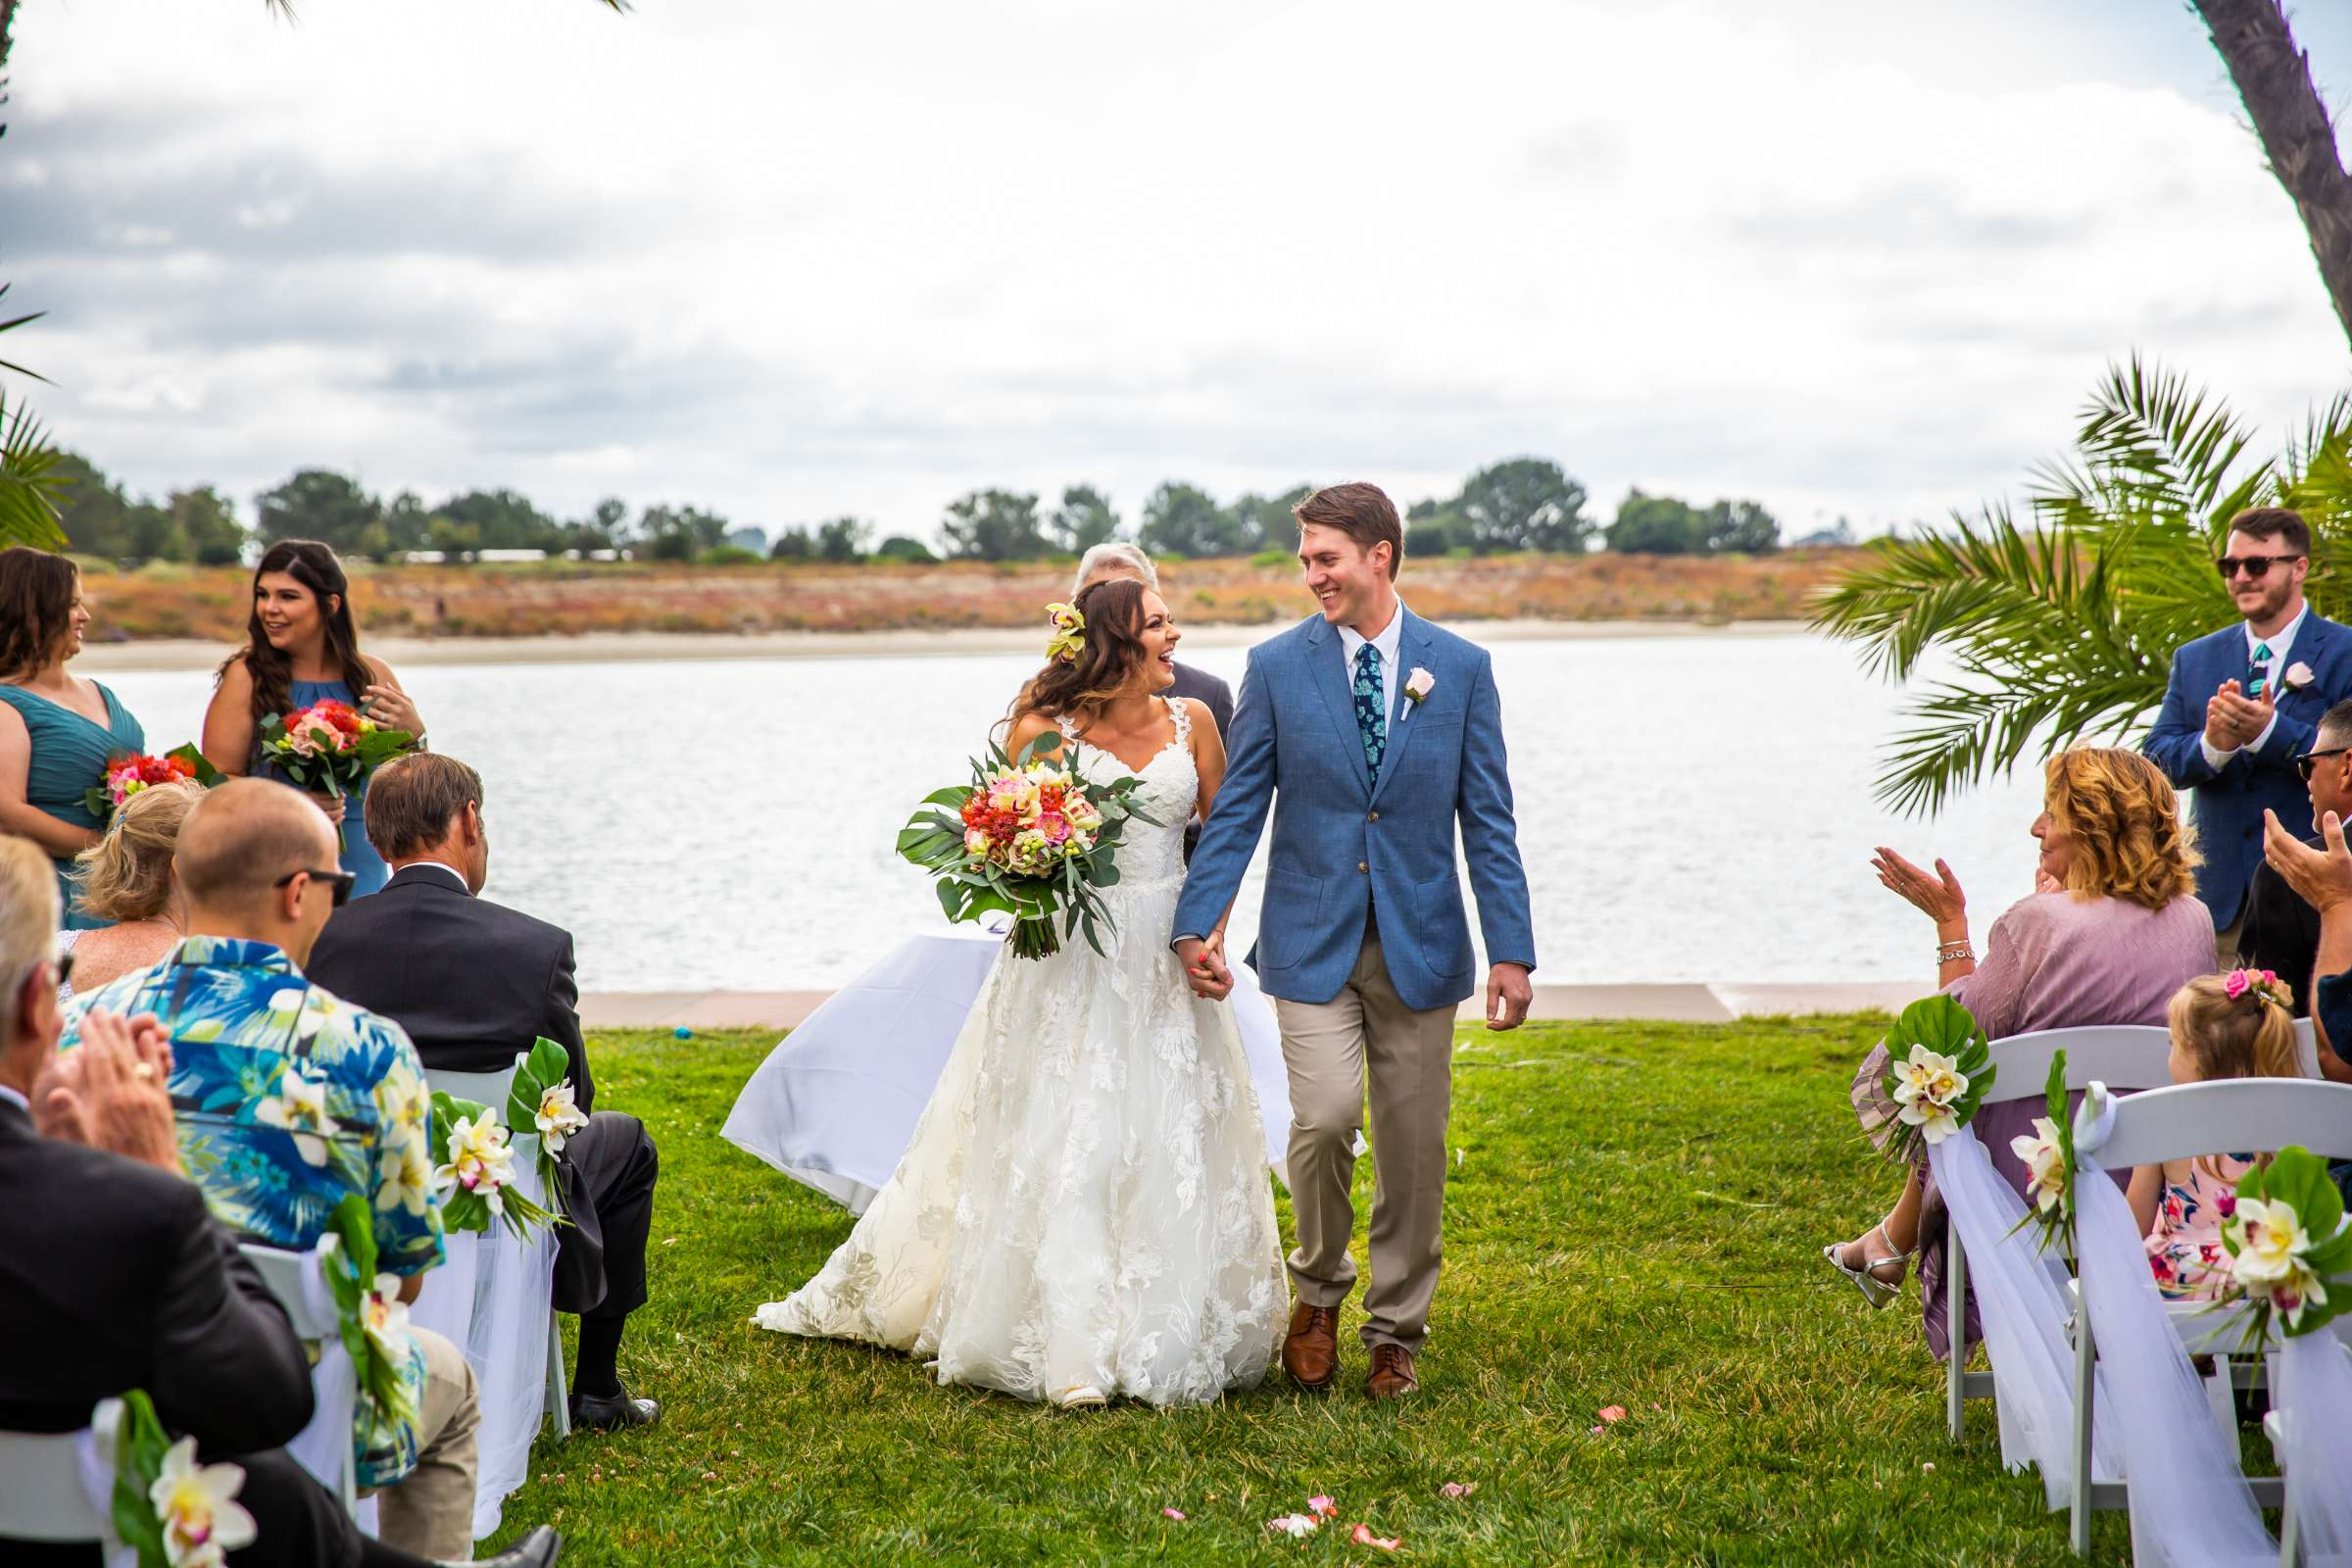 San Diego Mission Bay Resort Wedding coordinated by Cafe Au Love, Lauren and Adam Wedding Photo #84 by True Photography